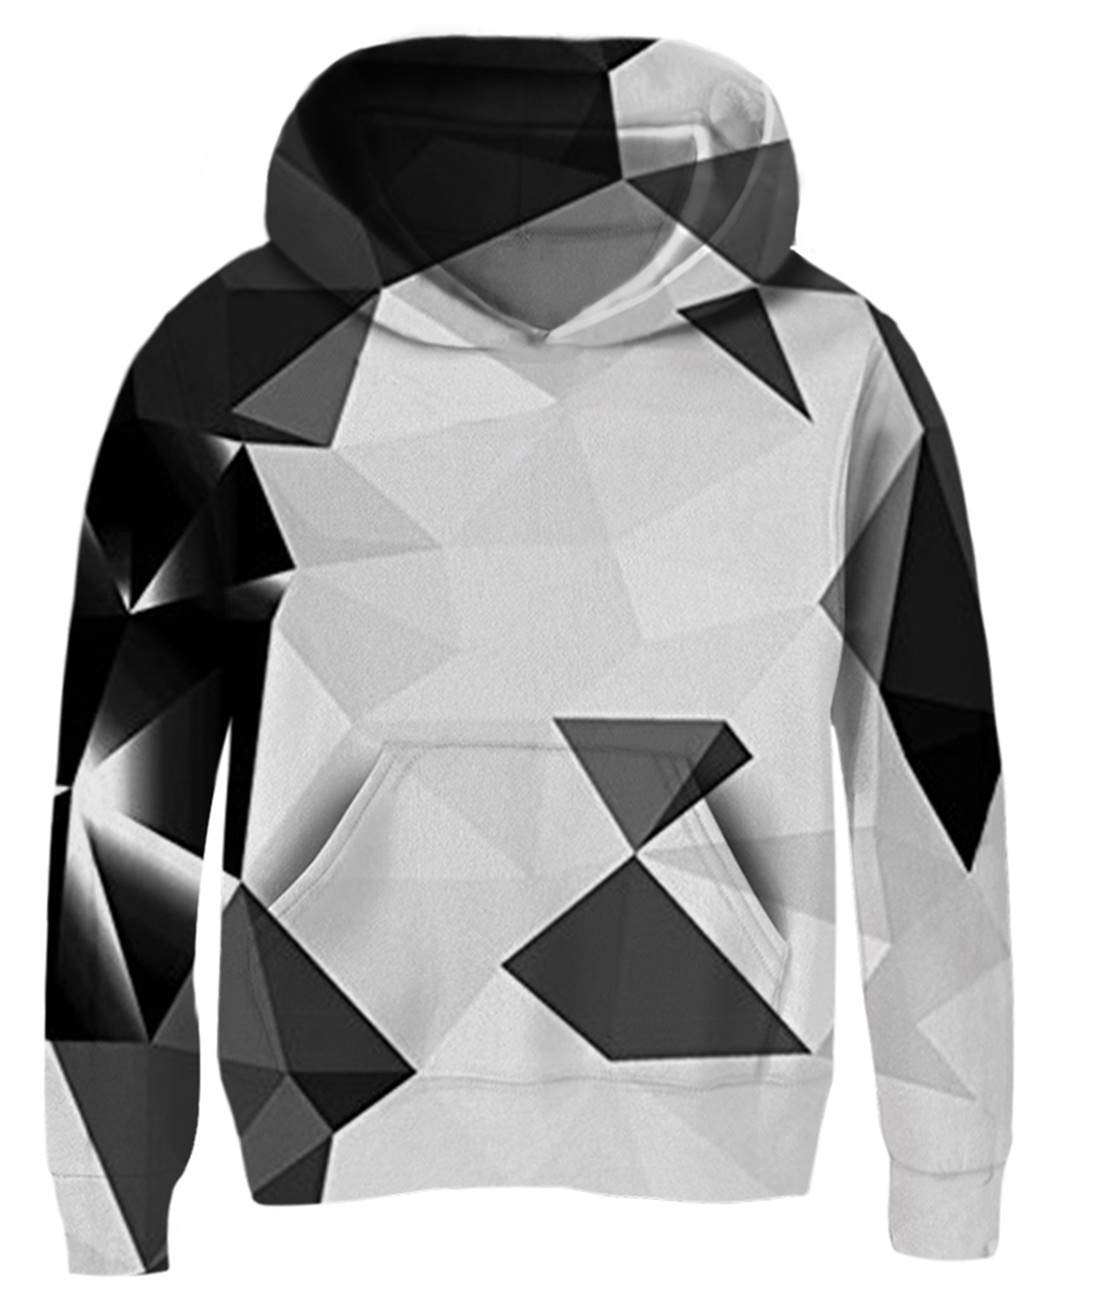 Idgreatim Boys Girls Novetly Hoodies 3D Print Pullover Hooded Sweatshirts with Pockets 5-13 Years